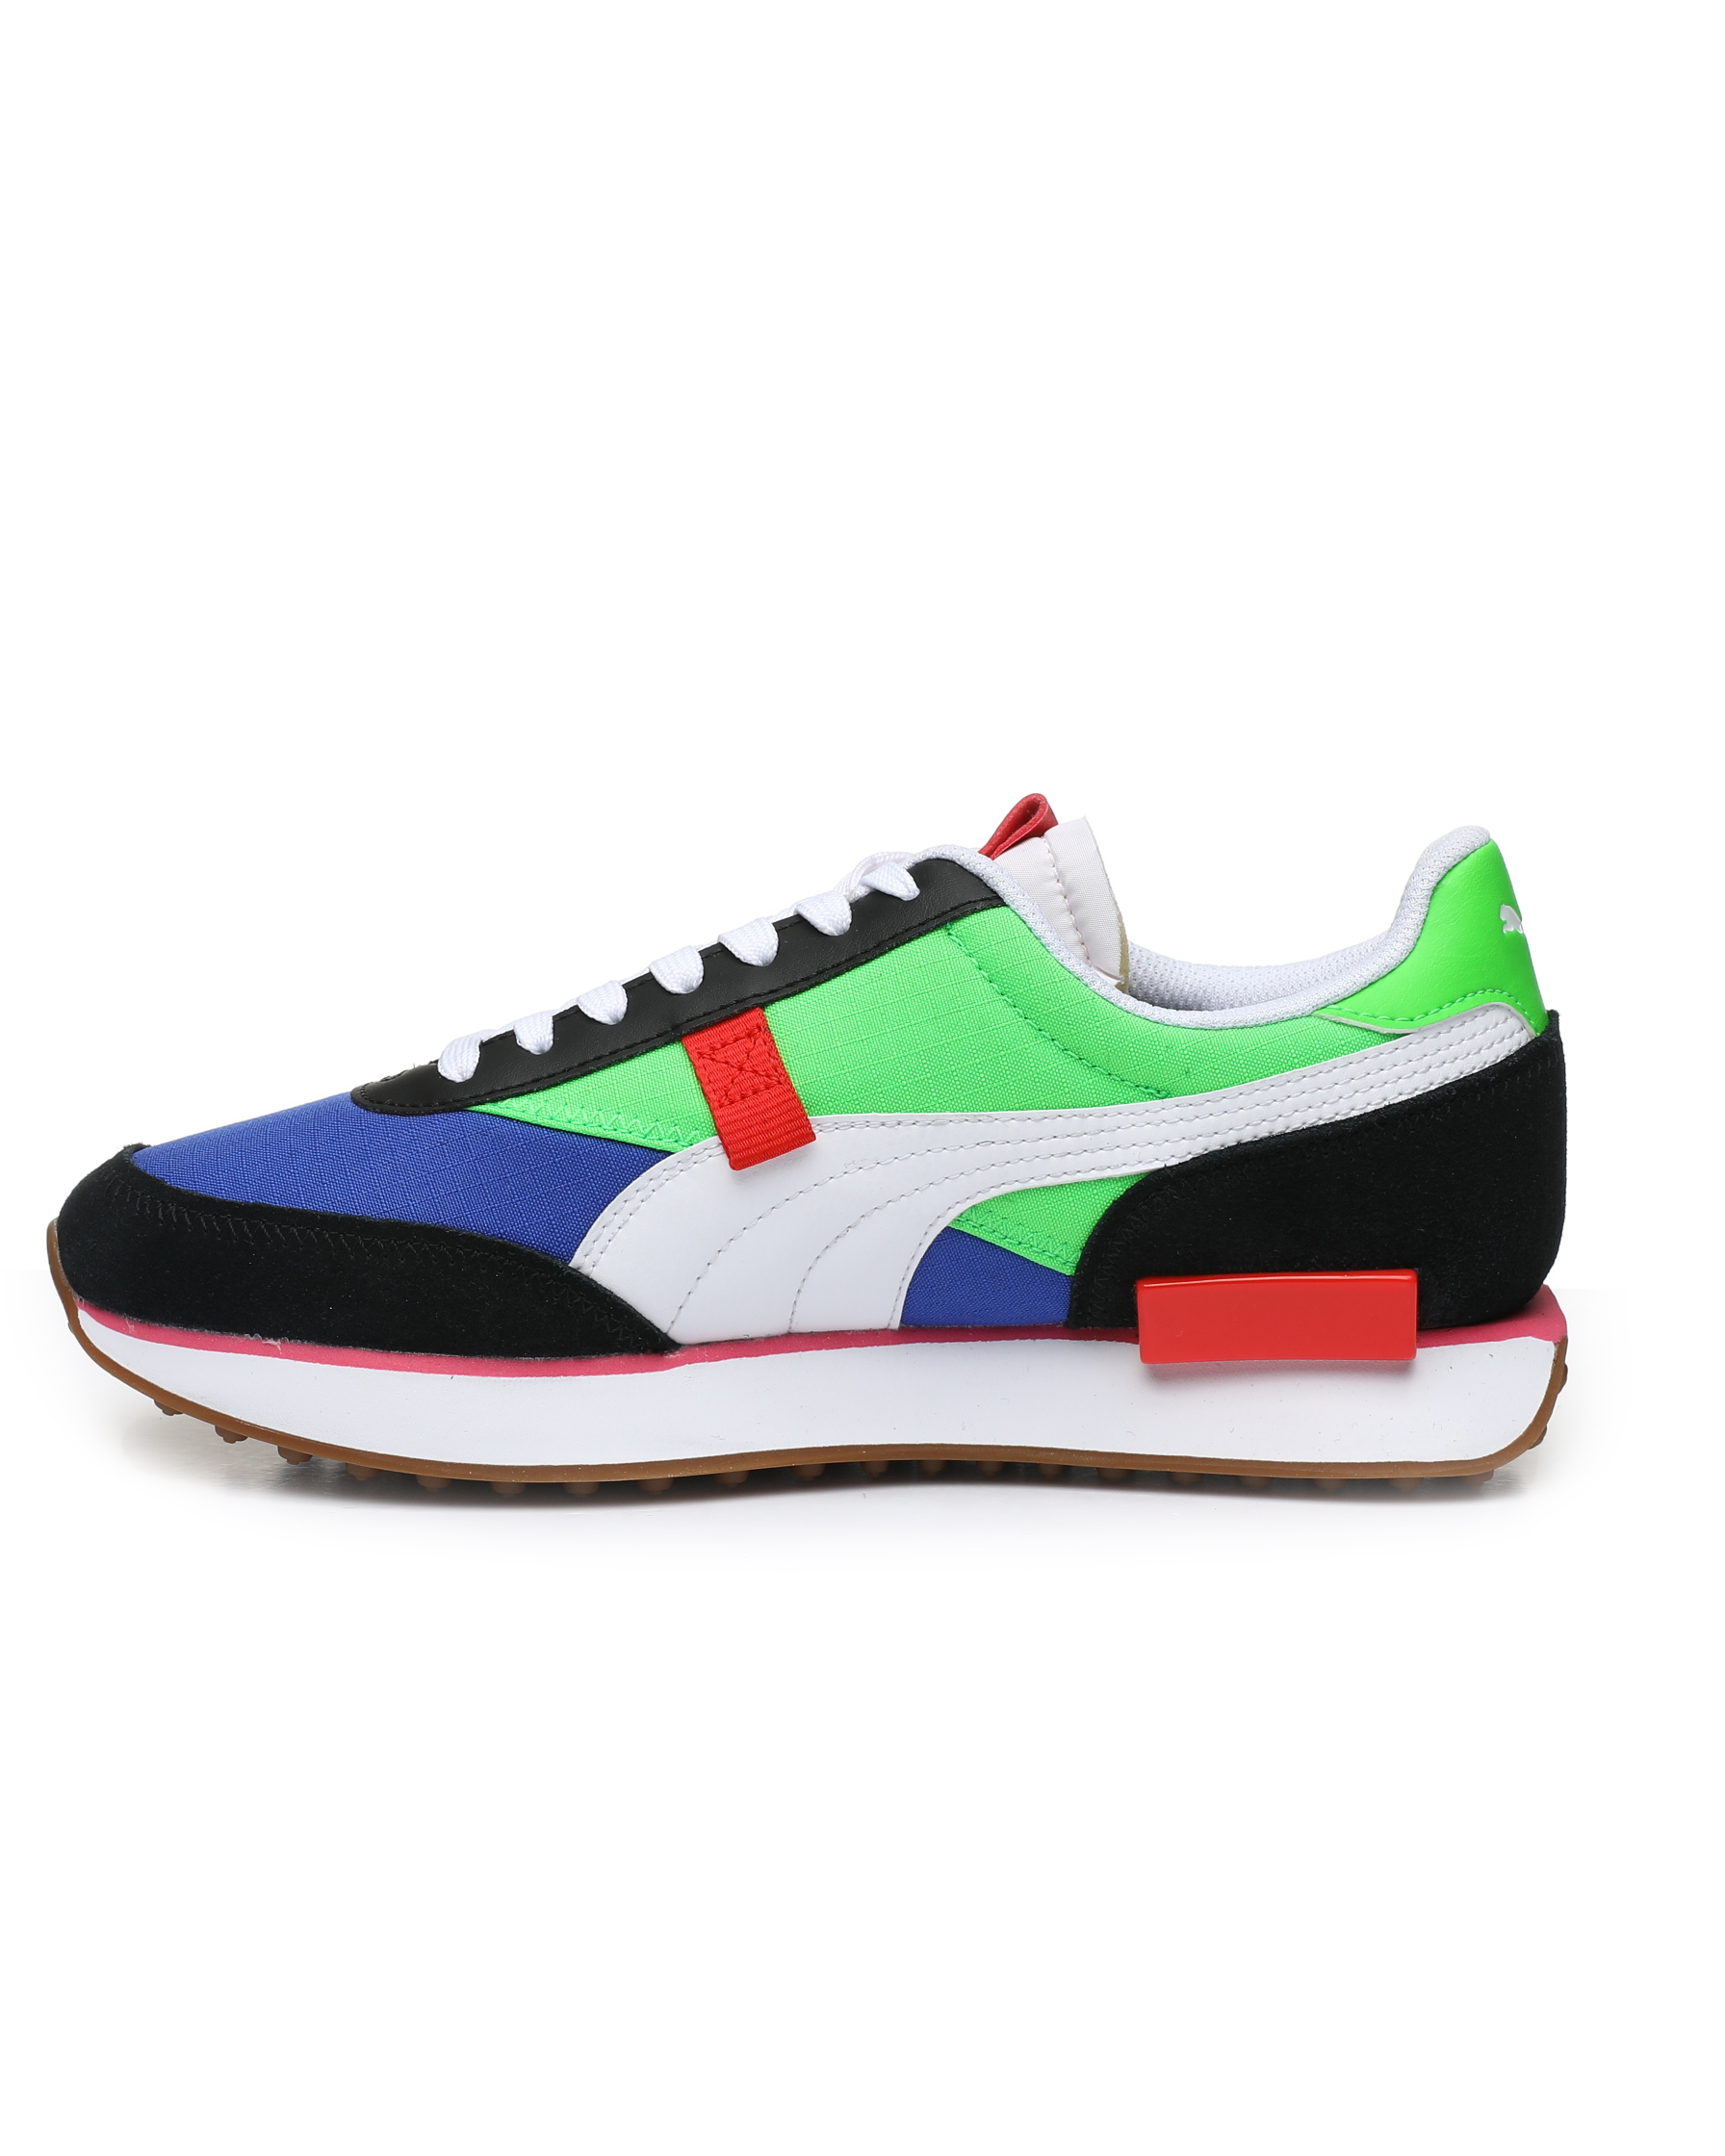 Buy Future Rider Play On Sneakers Men's Footwear from Puma